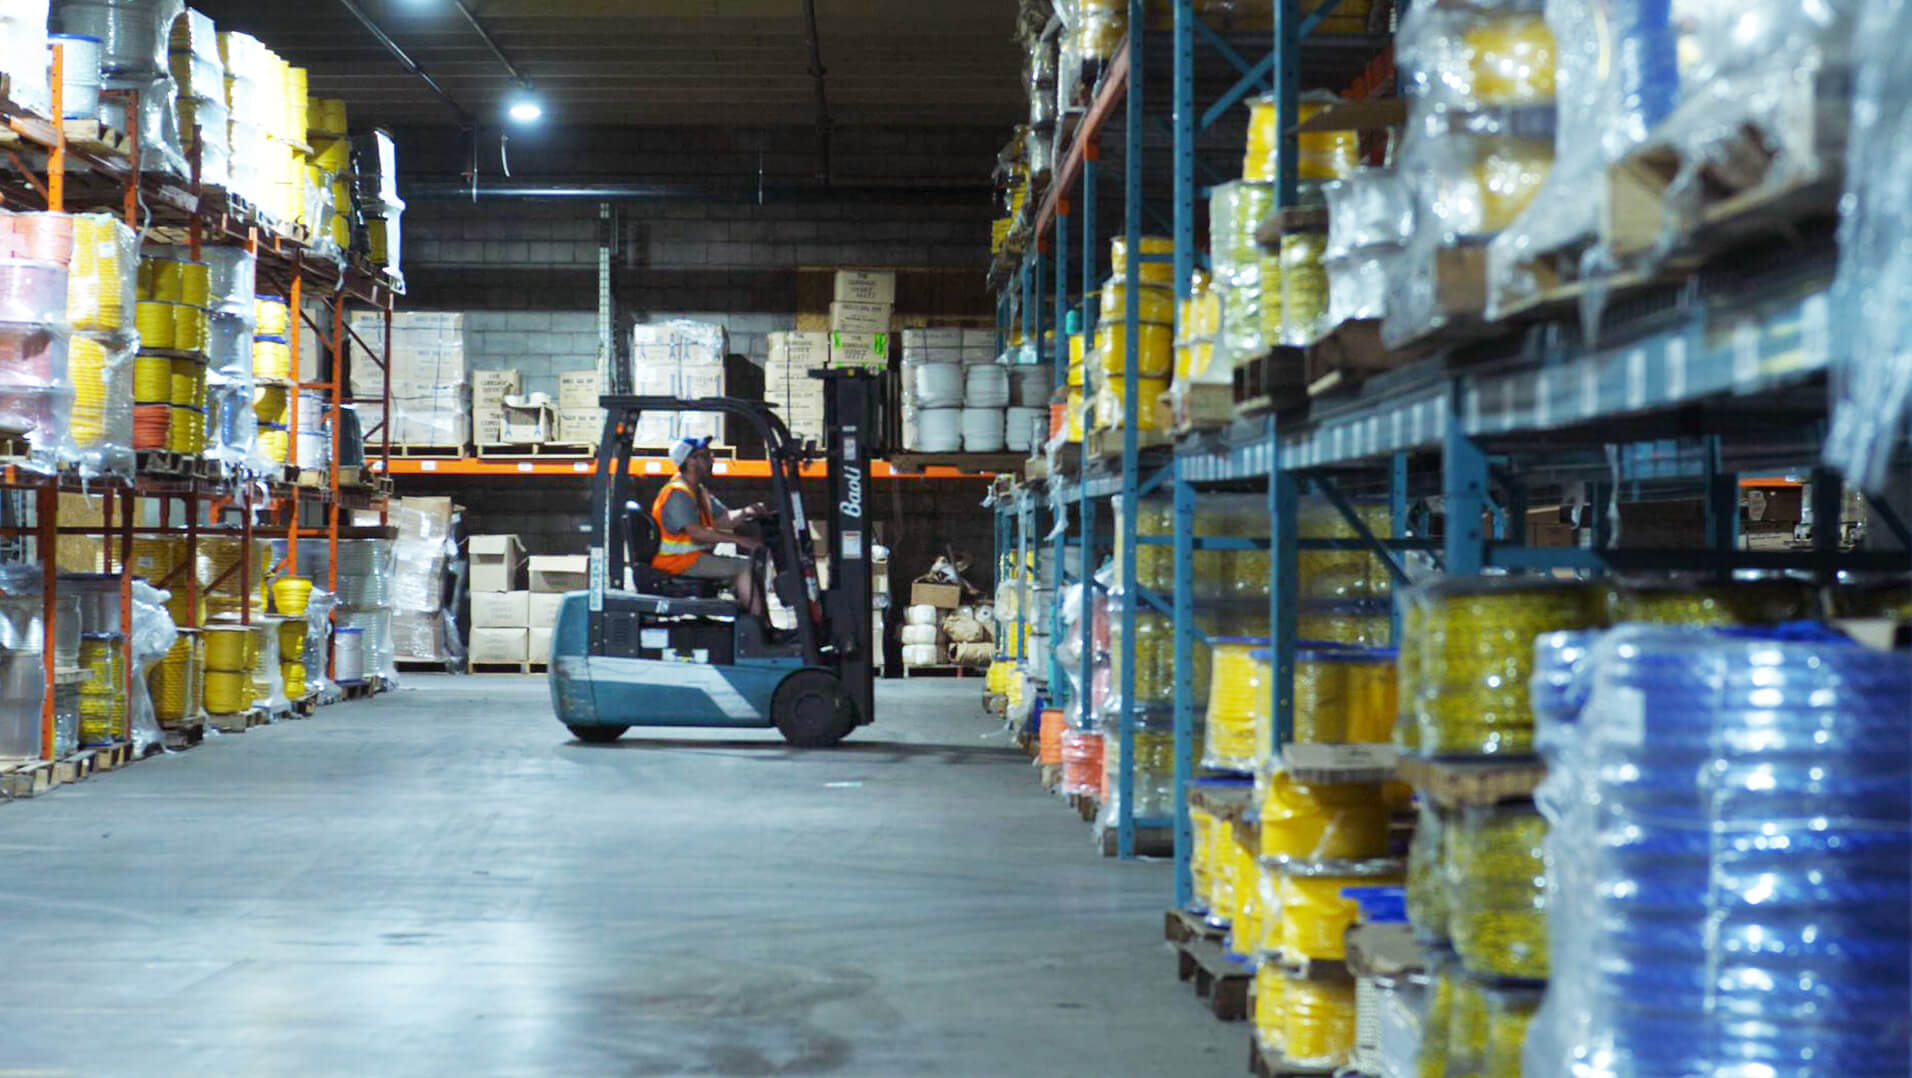 Forklift working in the Orion Cordage warehouse